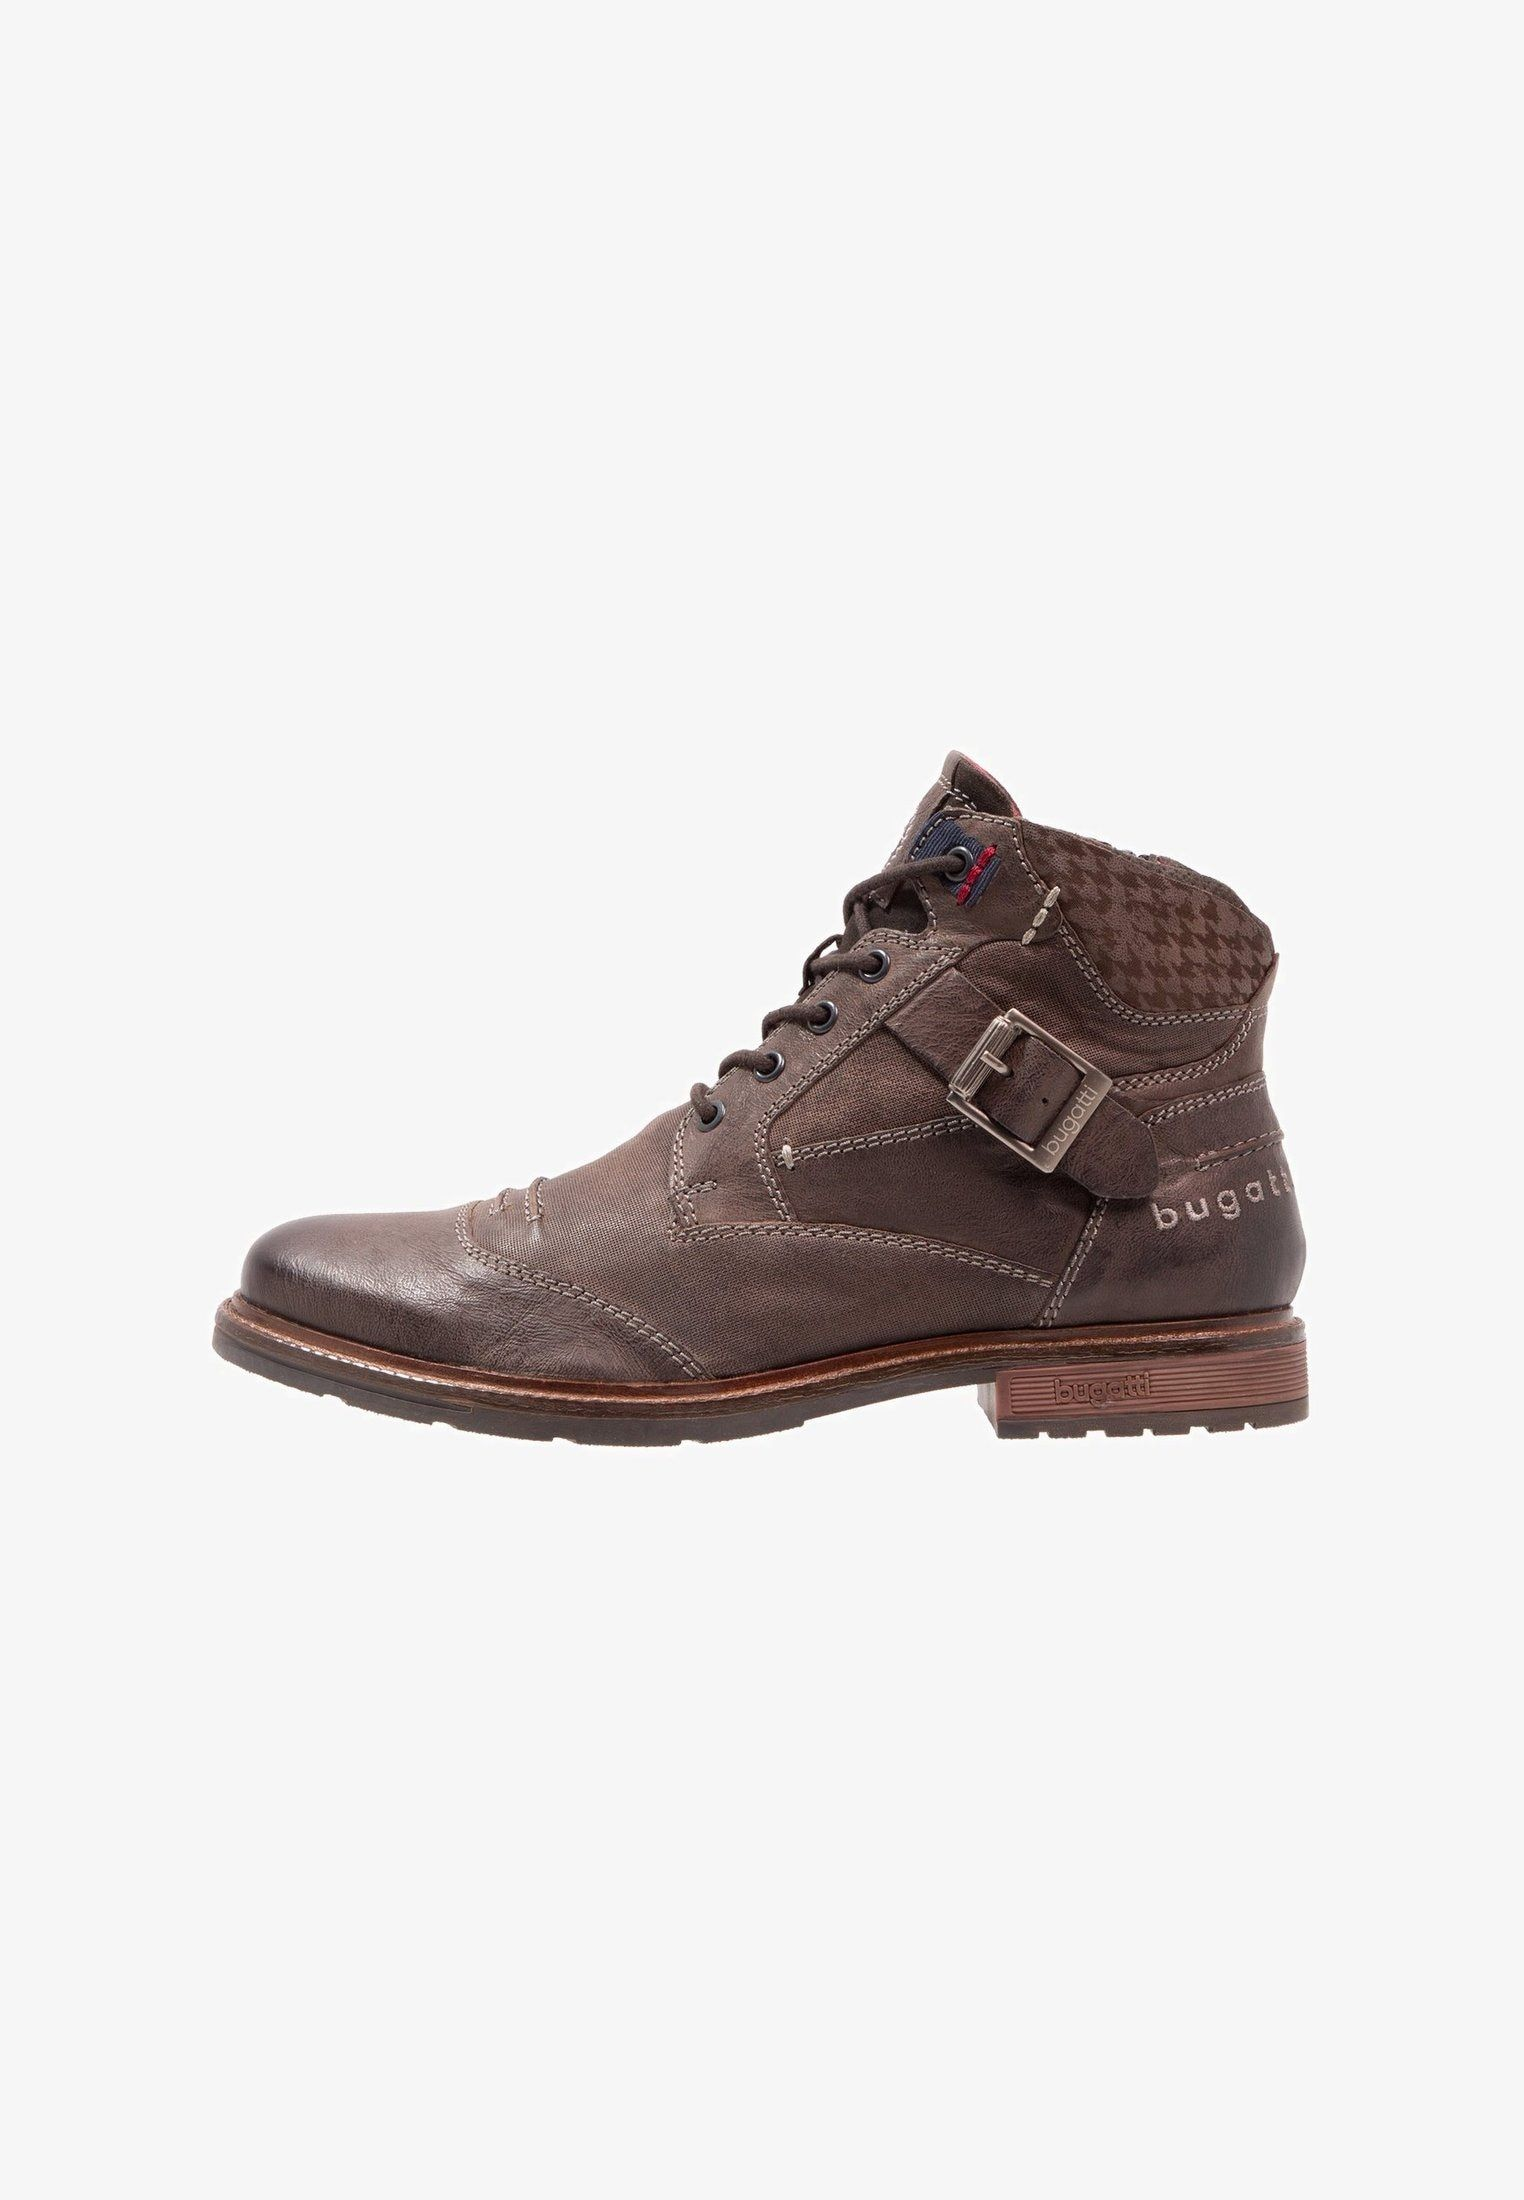 online retailer 75ae8 0ec92 Lace-up ankle boots - dark grey @ Zalando.co.uk 🛒 in 2019 ...